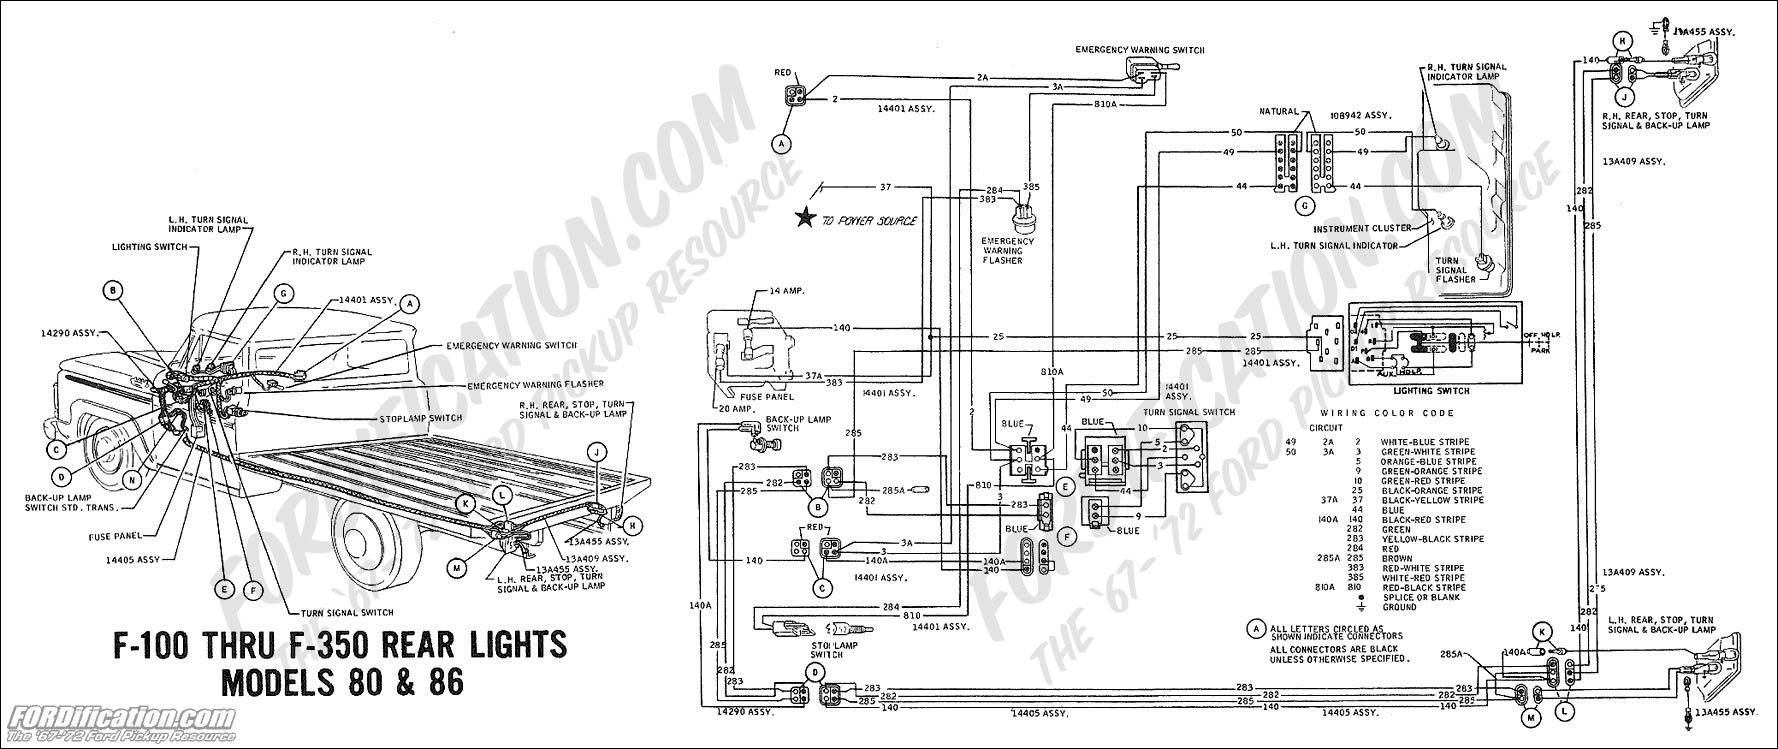 wiring_69rearlights mdls80 86 1994 f700 wiring diagram on 1994 download wirning diagrams 1979 Corvette Fuse Box Diagram at virtualis.co